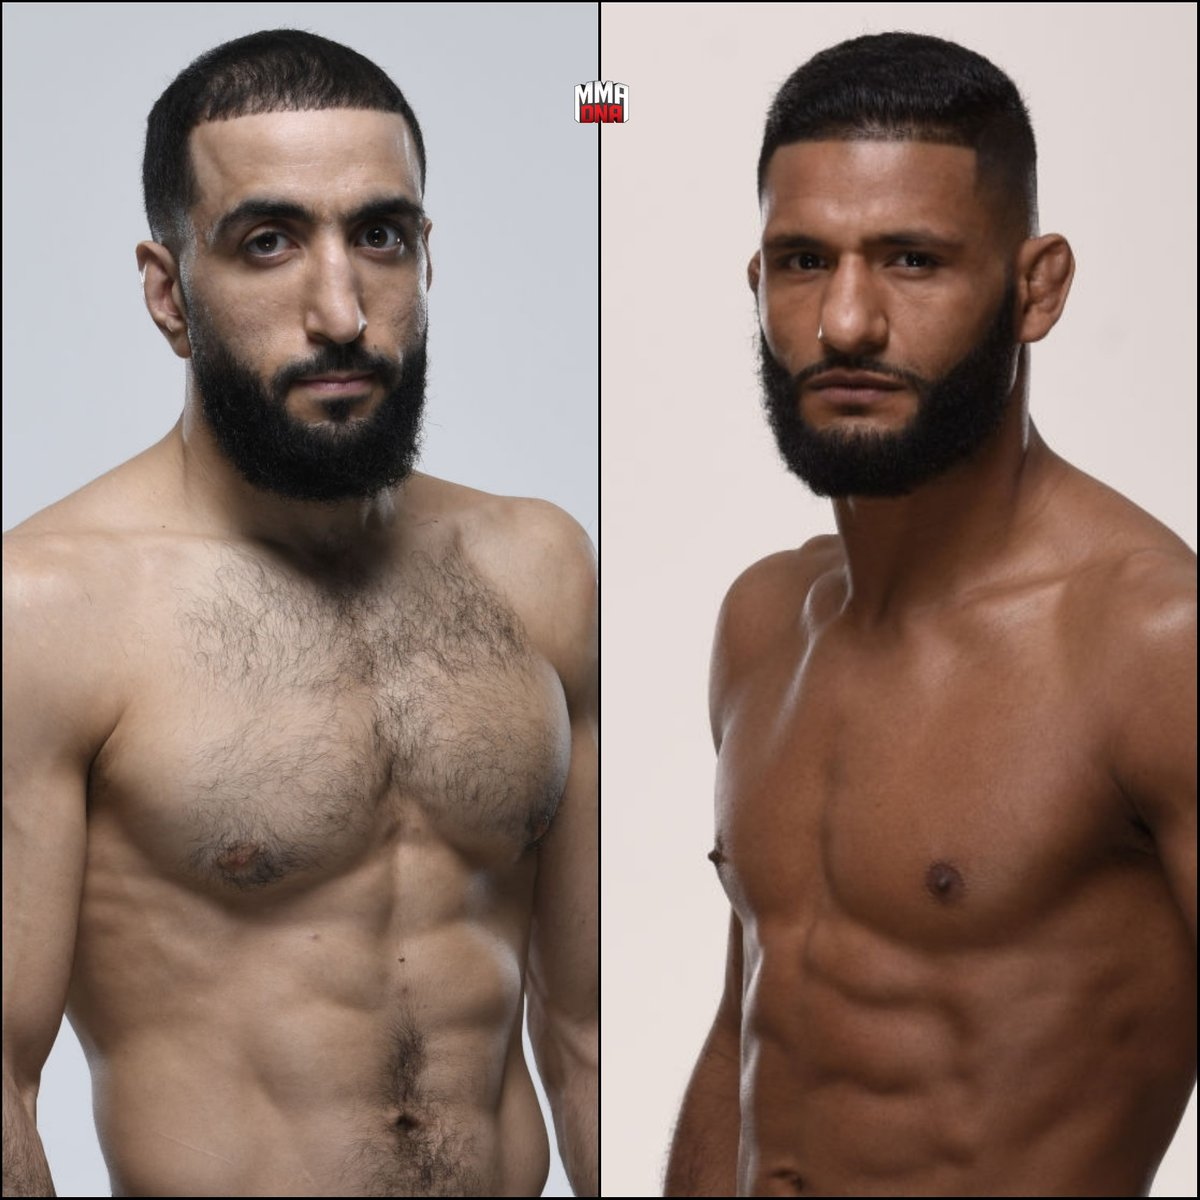 S.Brady out. Belal Muhammad will now fight Dhiego Lima at UFC event on December 19th. (per @Farah_Hannoun) #UFC #MMA #UFCESPN https://t.co/E6nrTgiIPf